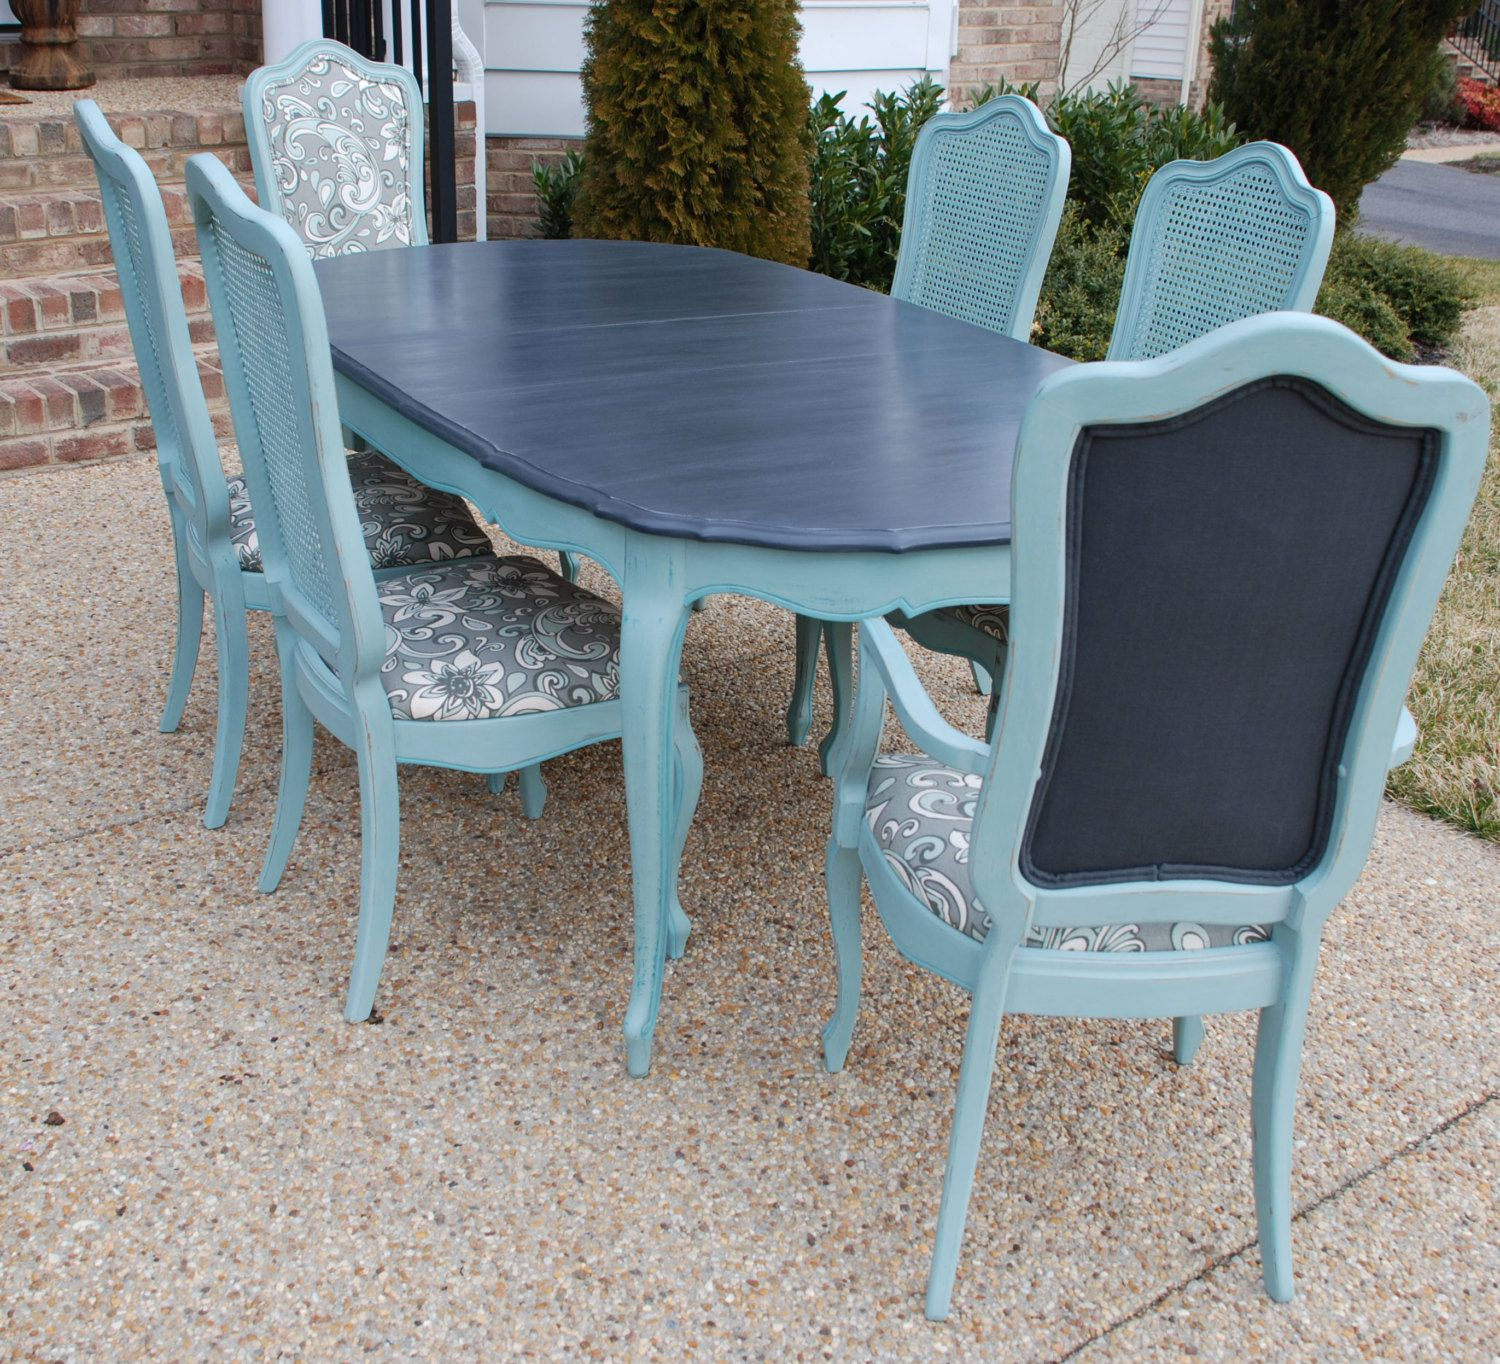 Refinished Painted Vintage 1960s Thomasville Dining Table And Chair Set.  $1,200.00, Via Etsy.